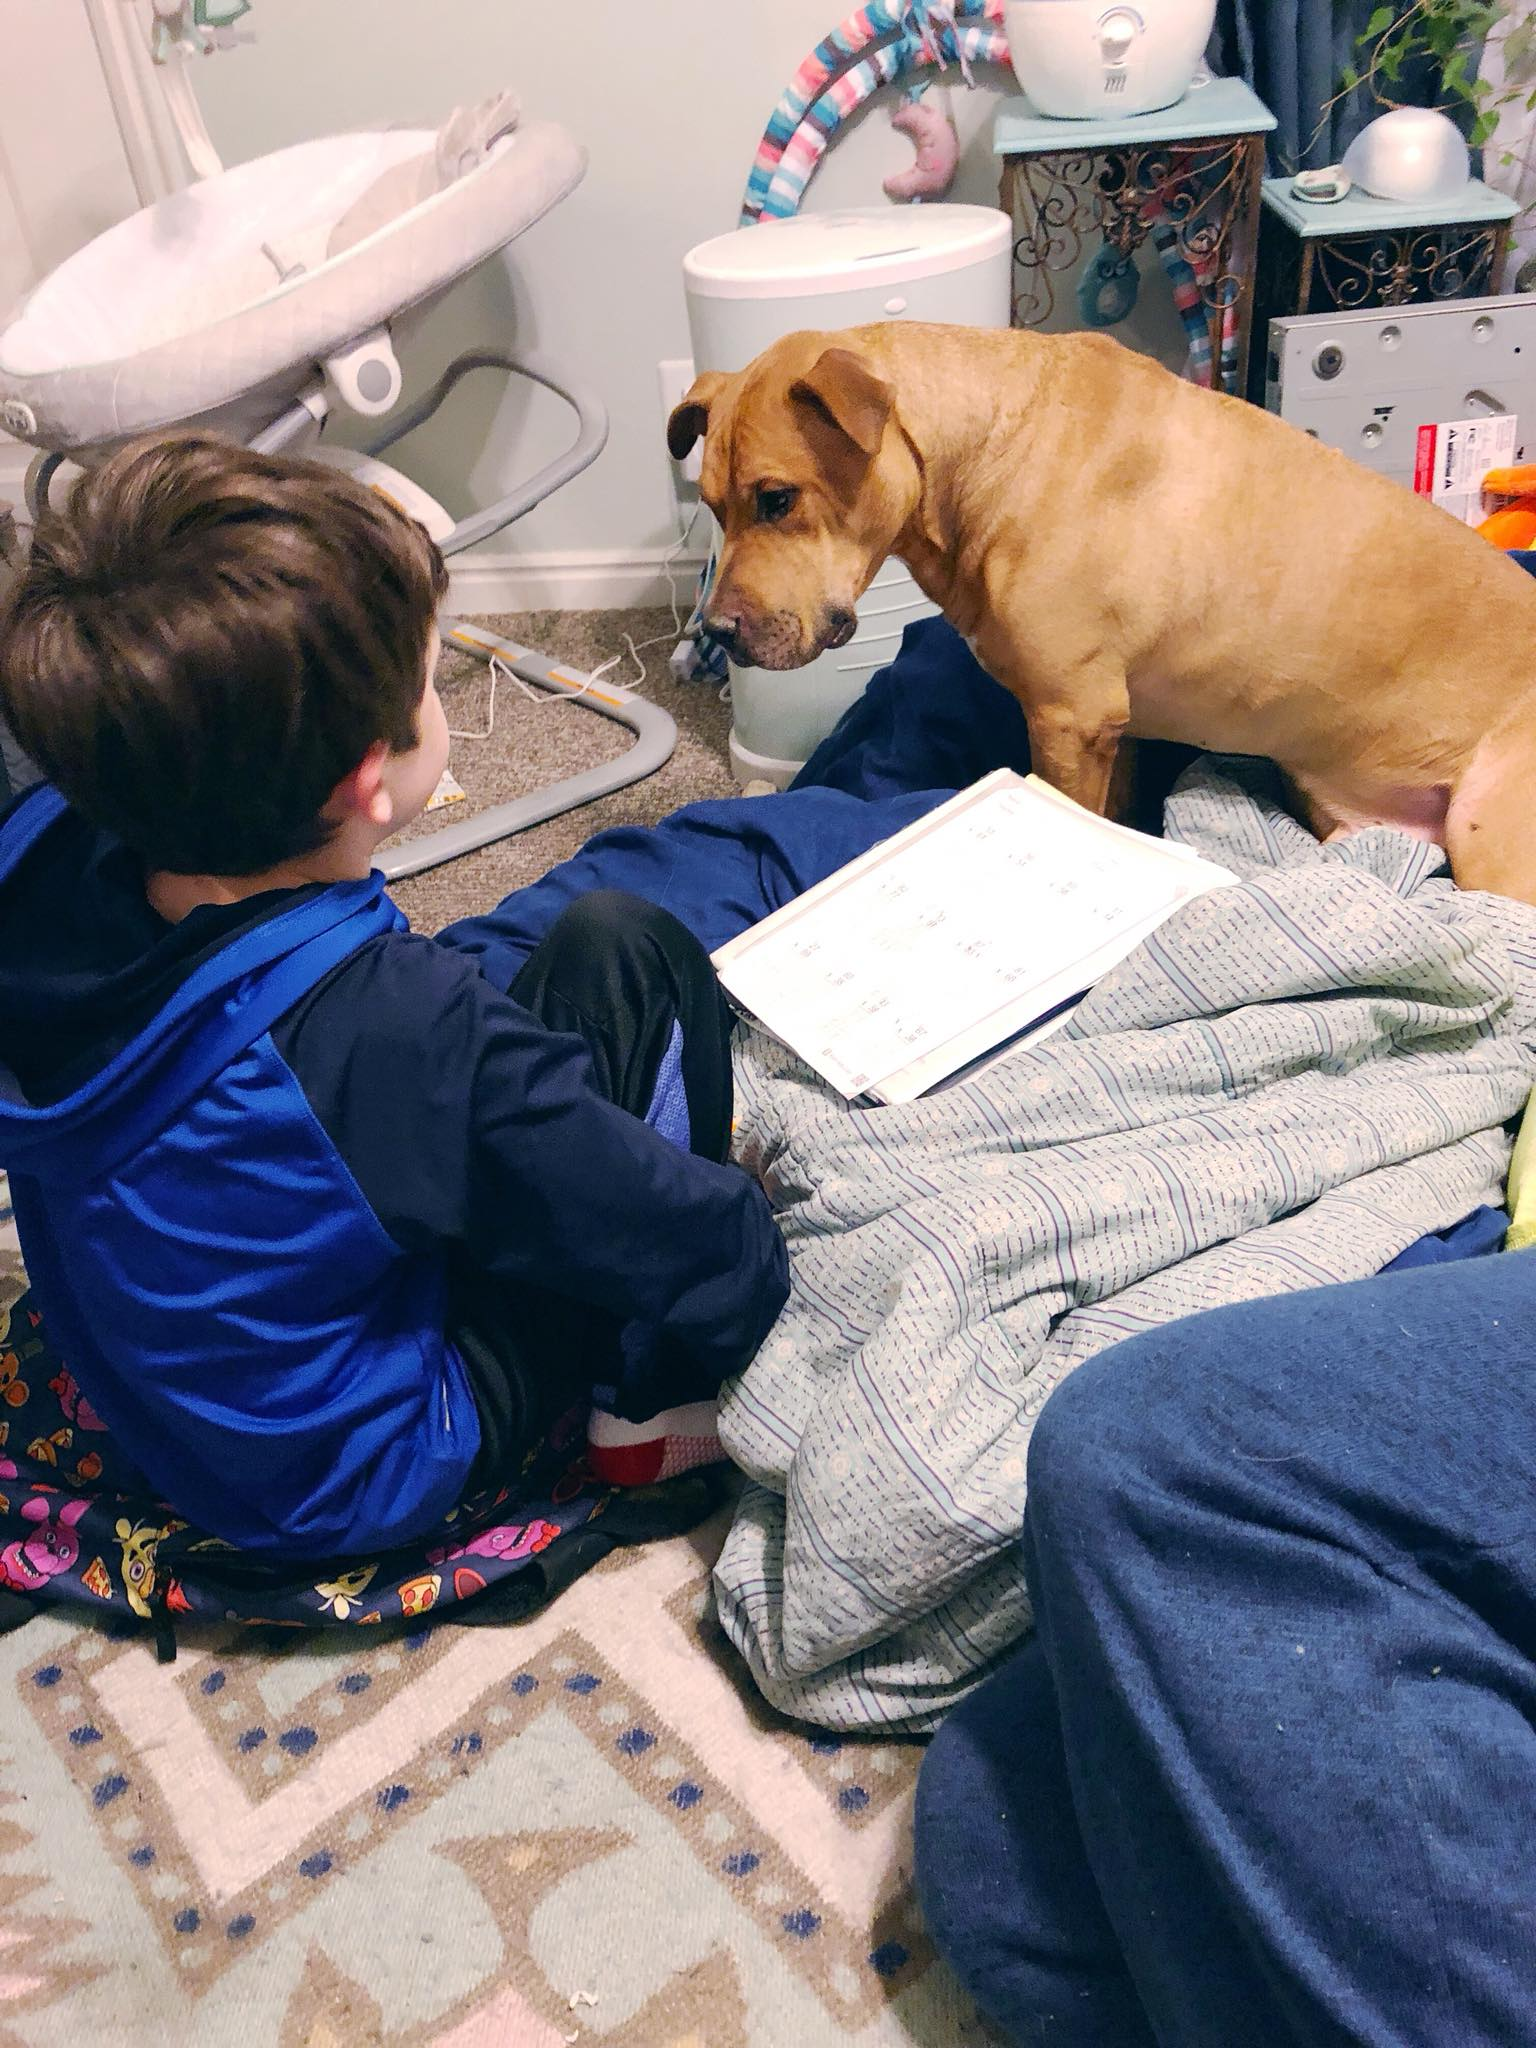 Tan pitbull staring intently at a 9 year old who's hiding food